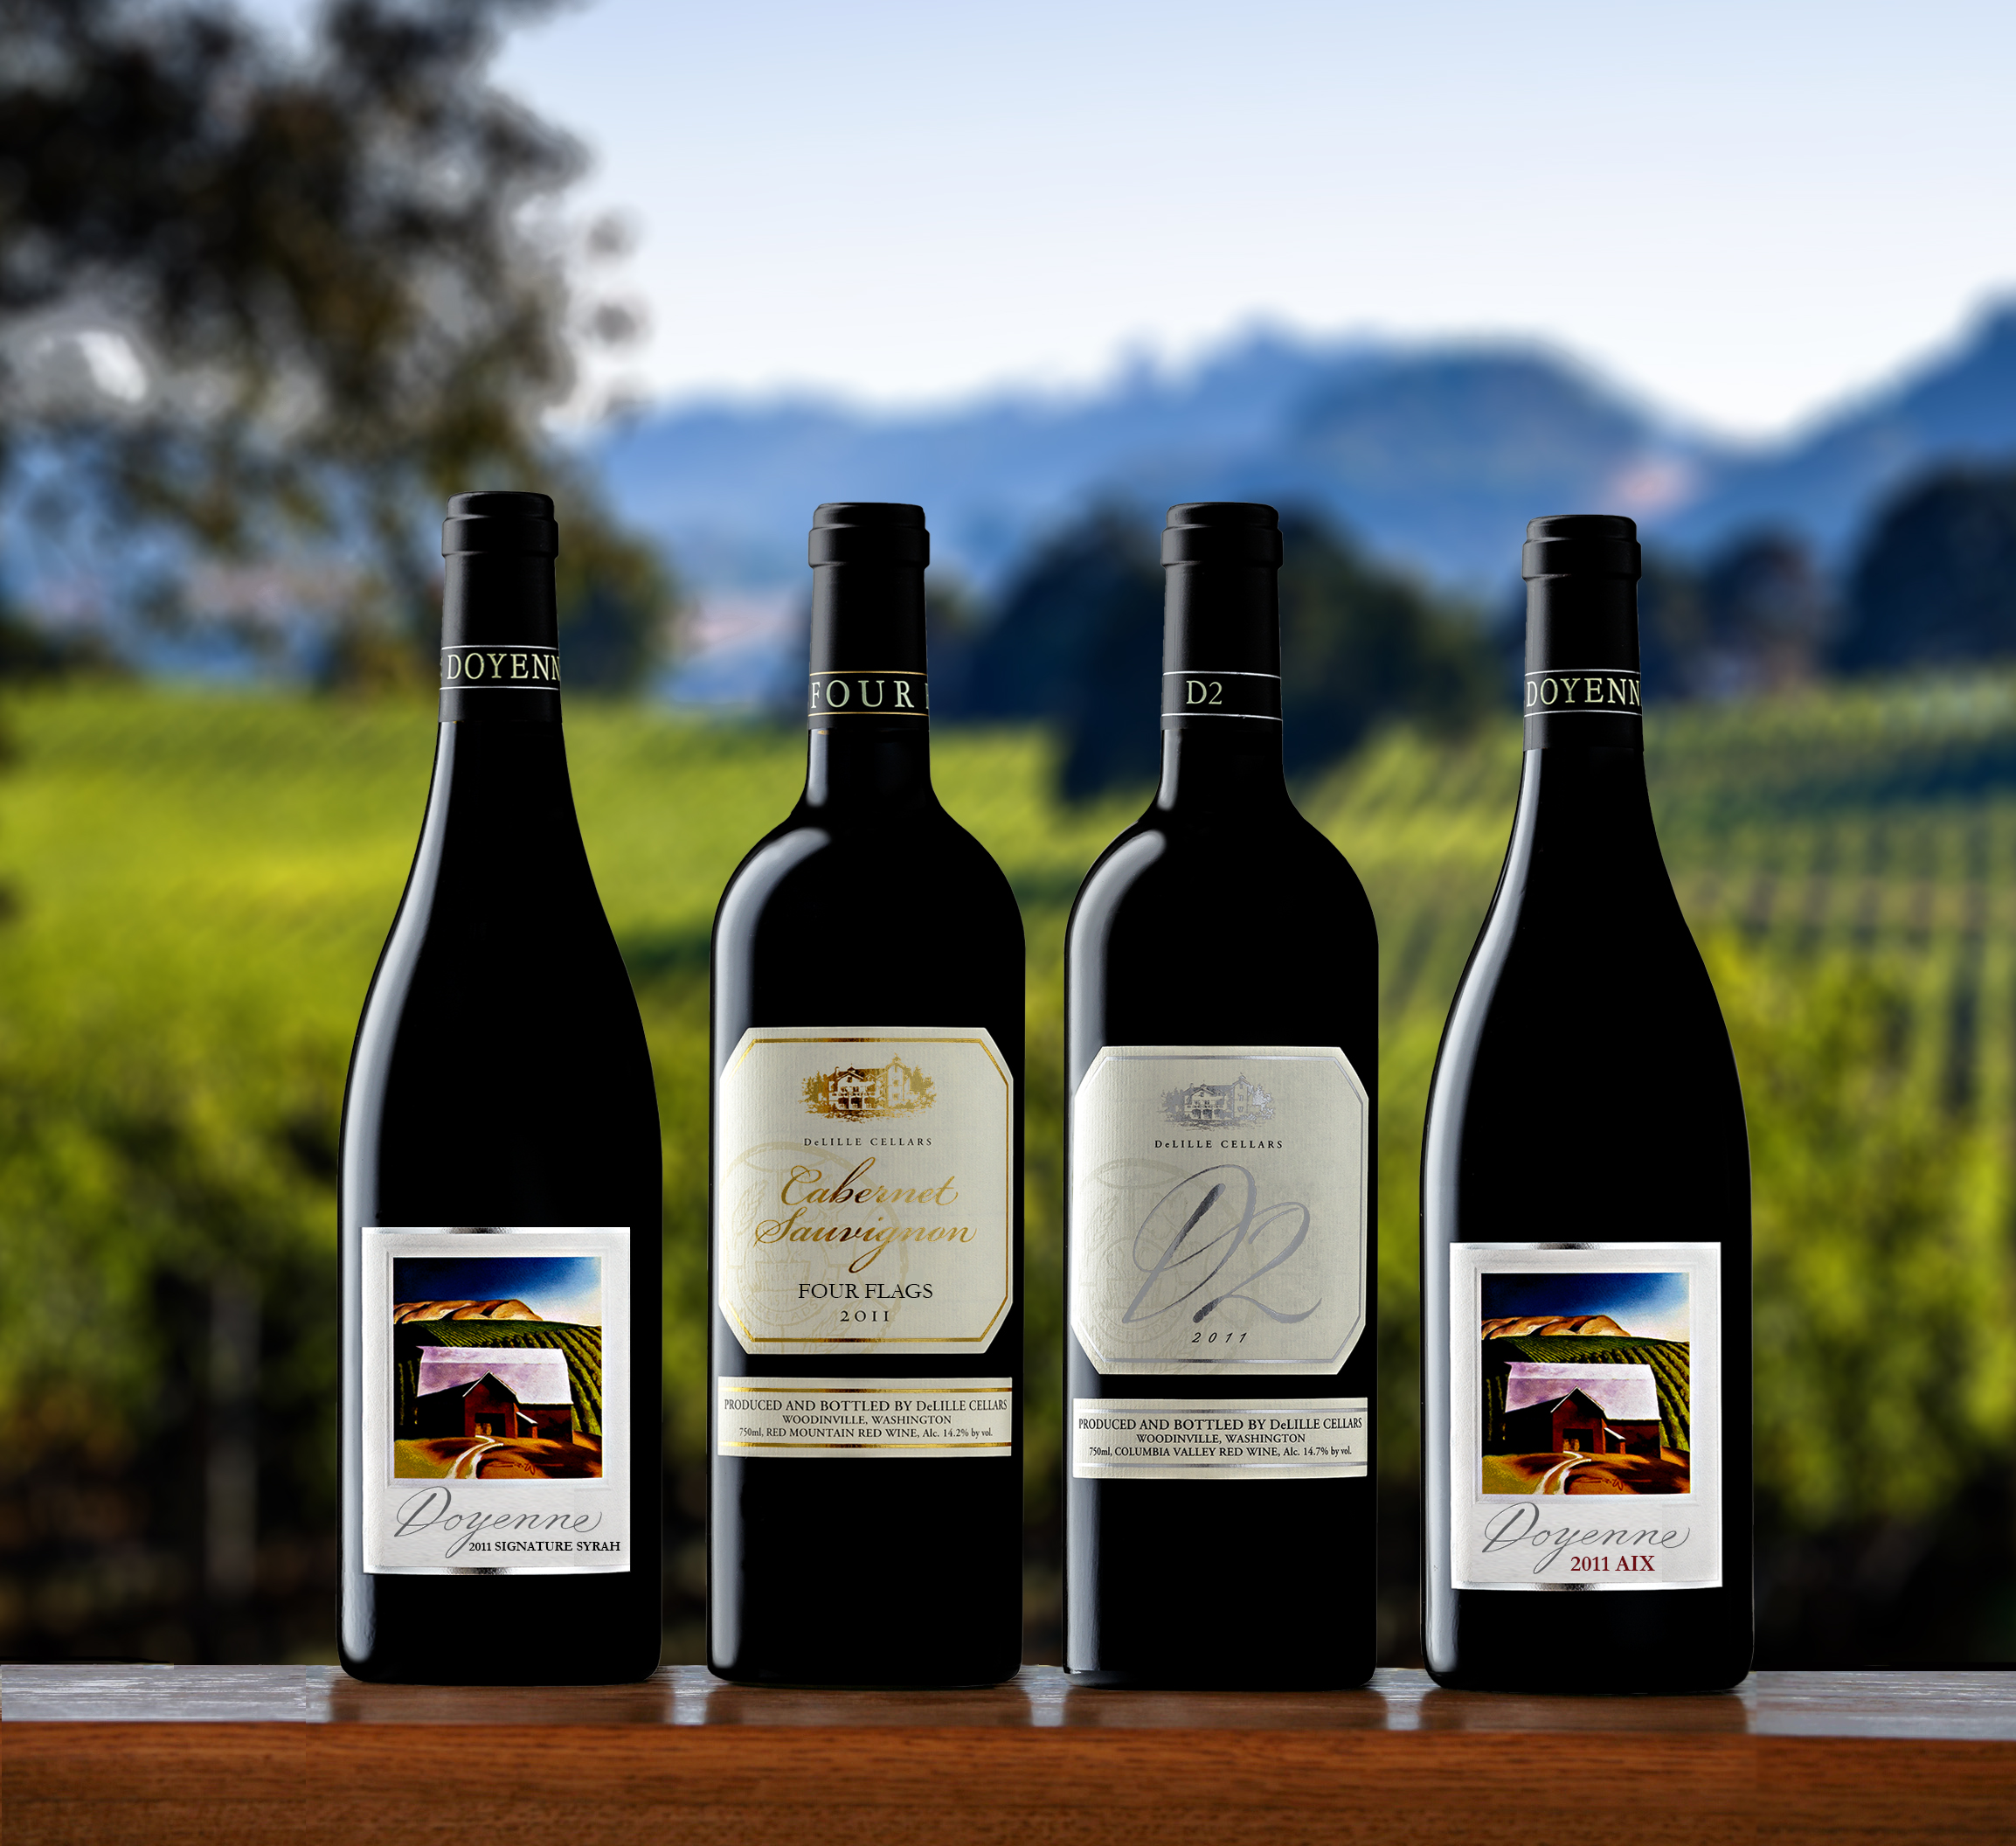 Impressive lineup of DeLille red wines